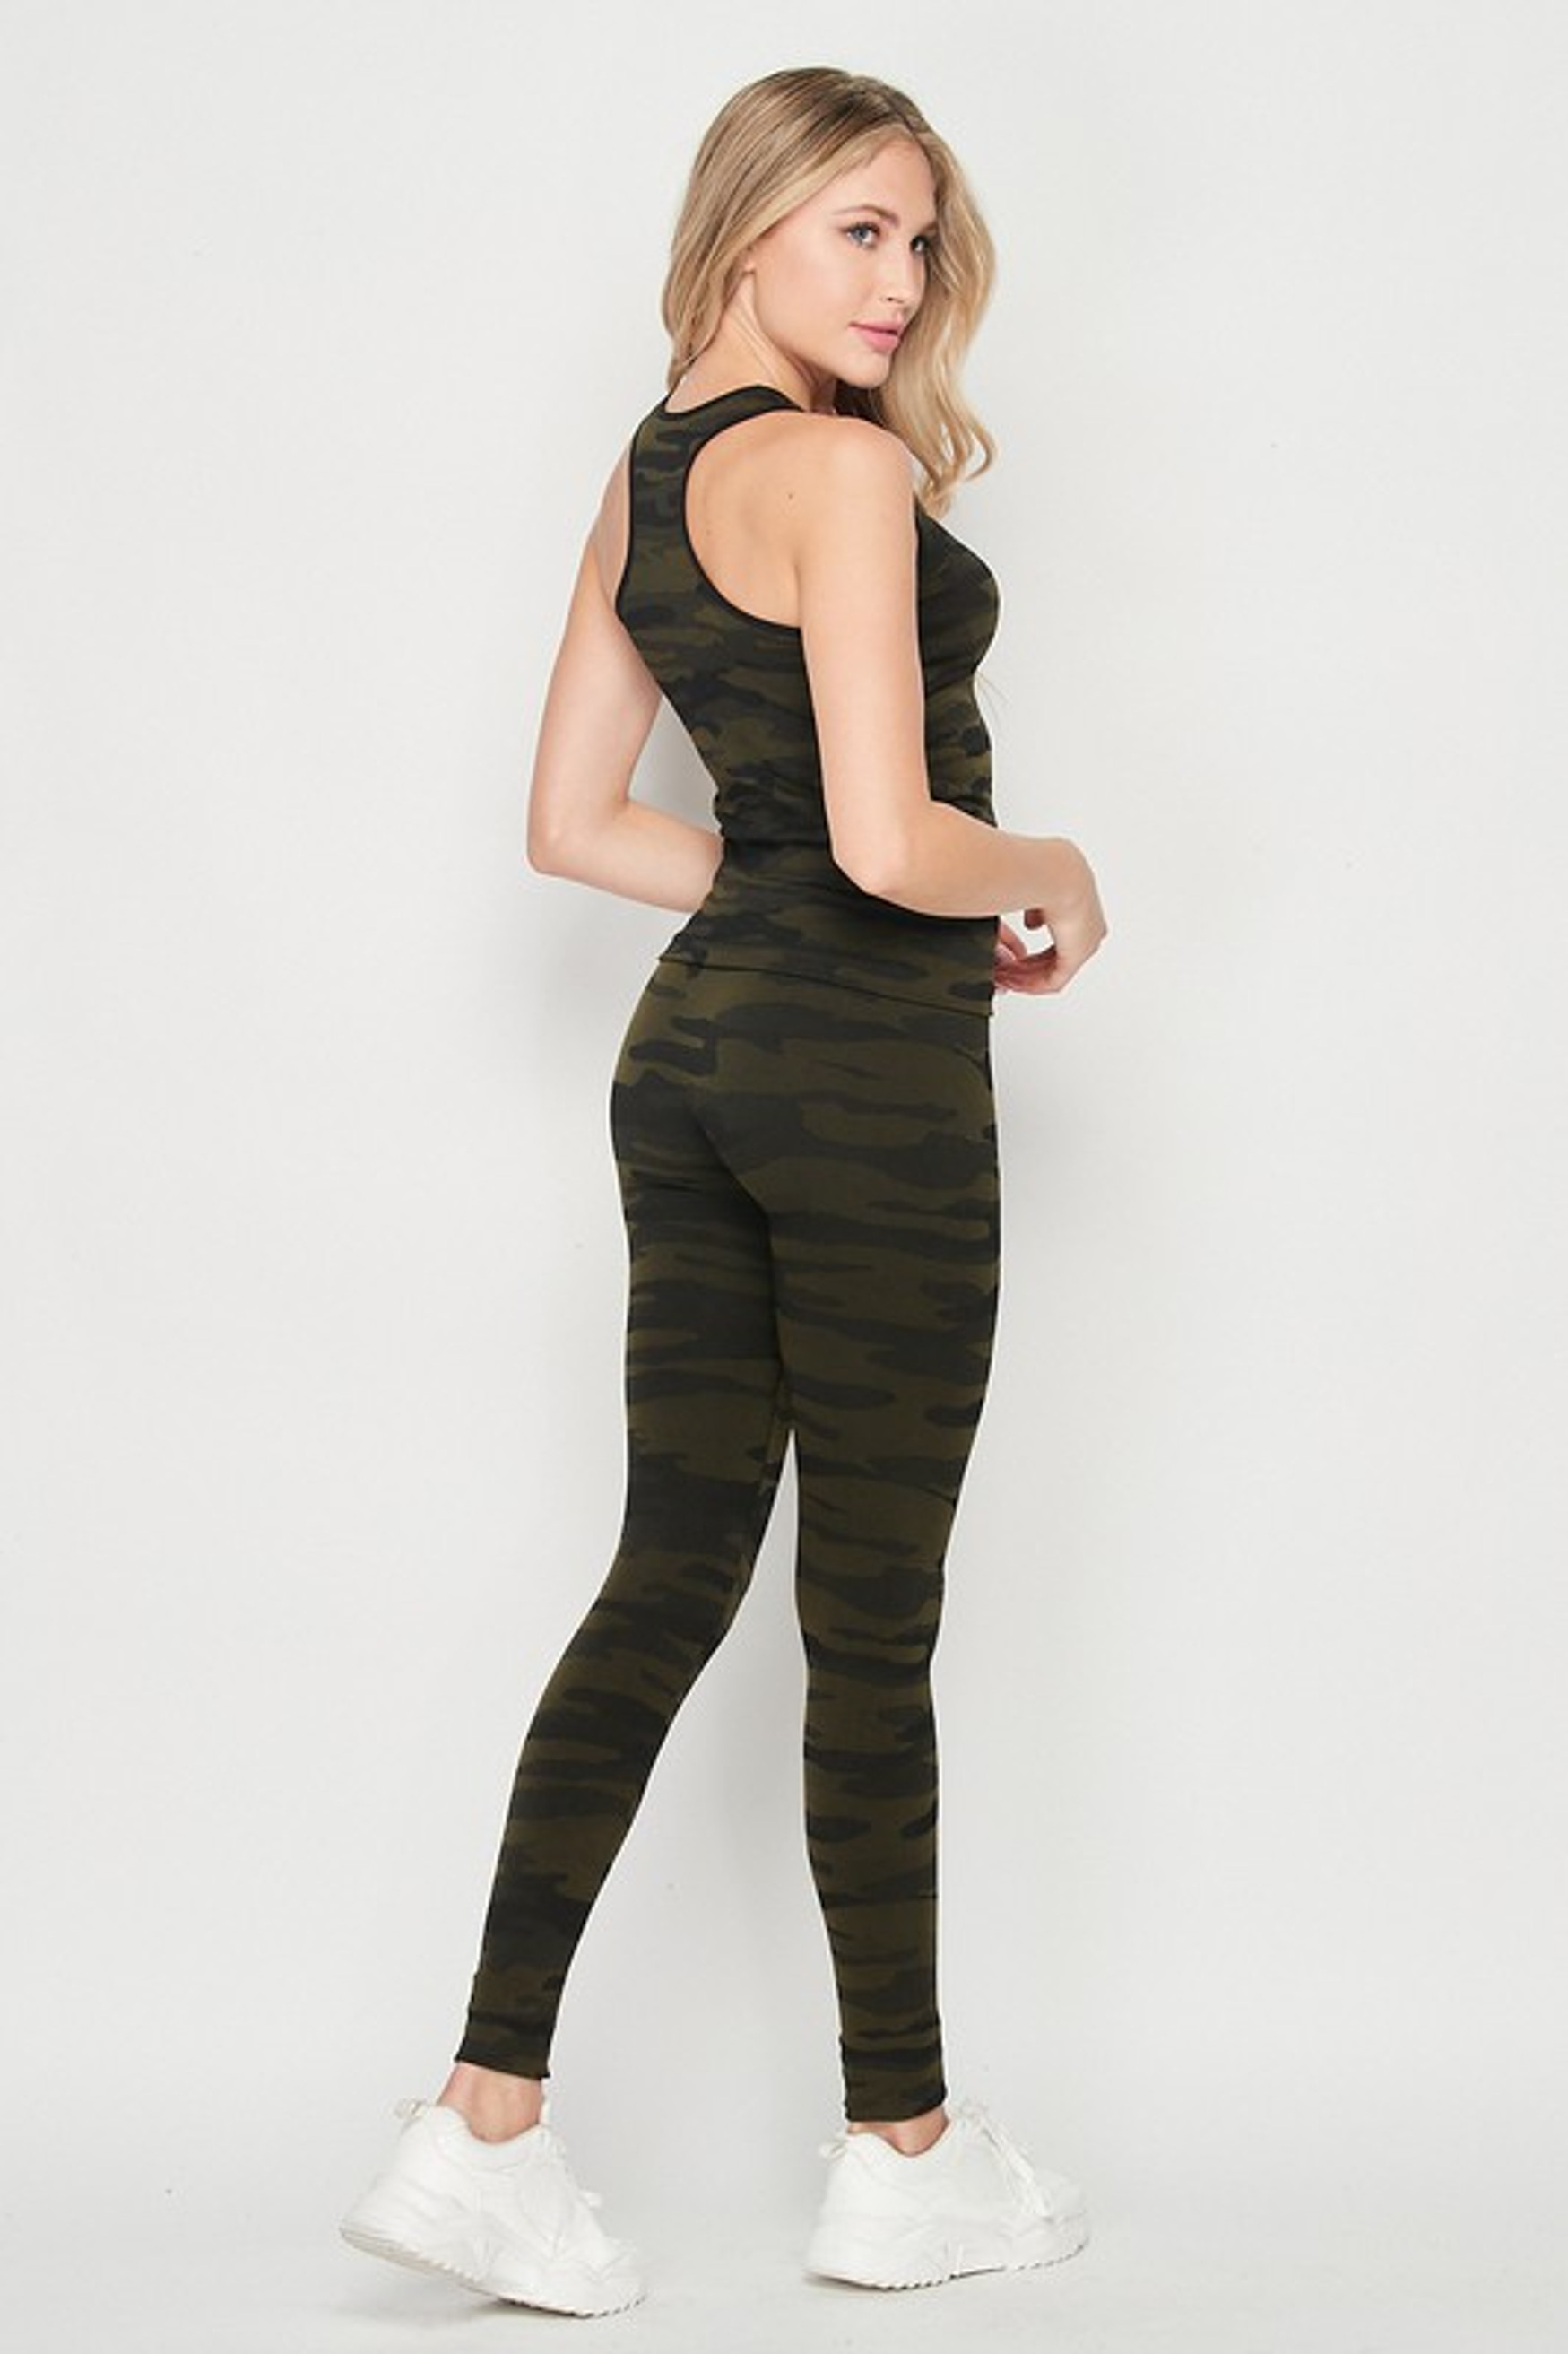 2 Piece Seamless Olive Camouflage Tank Top and Legging Set